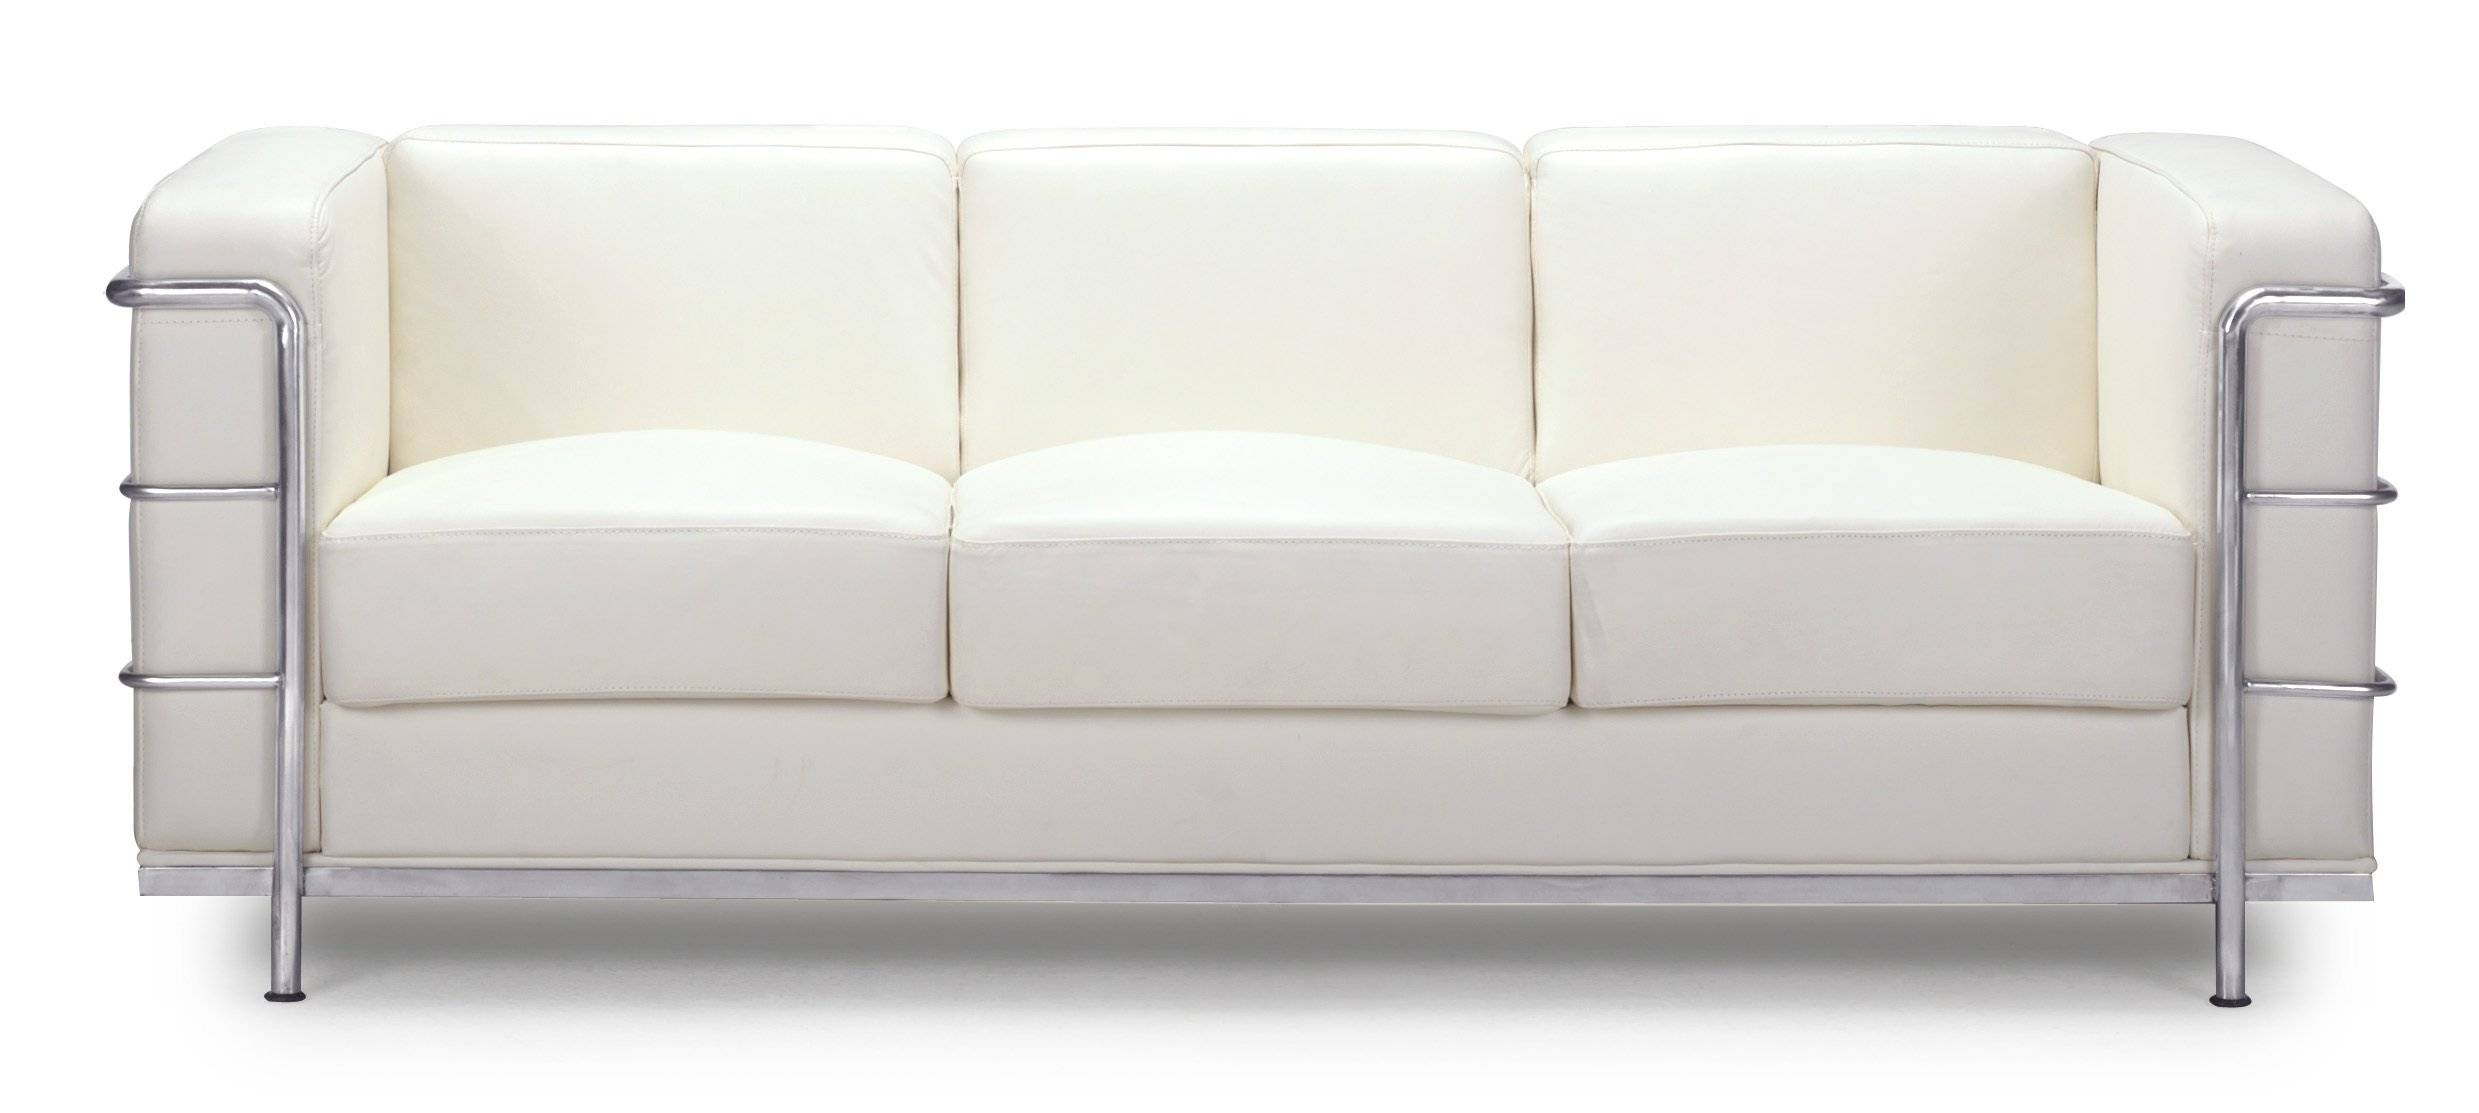 The Best White Modern Sofas